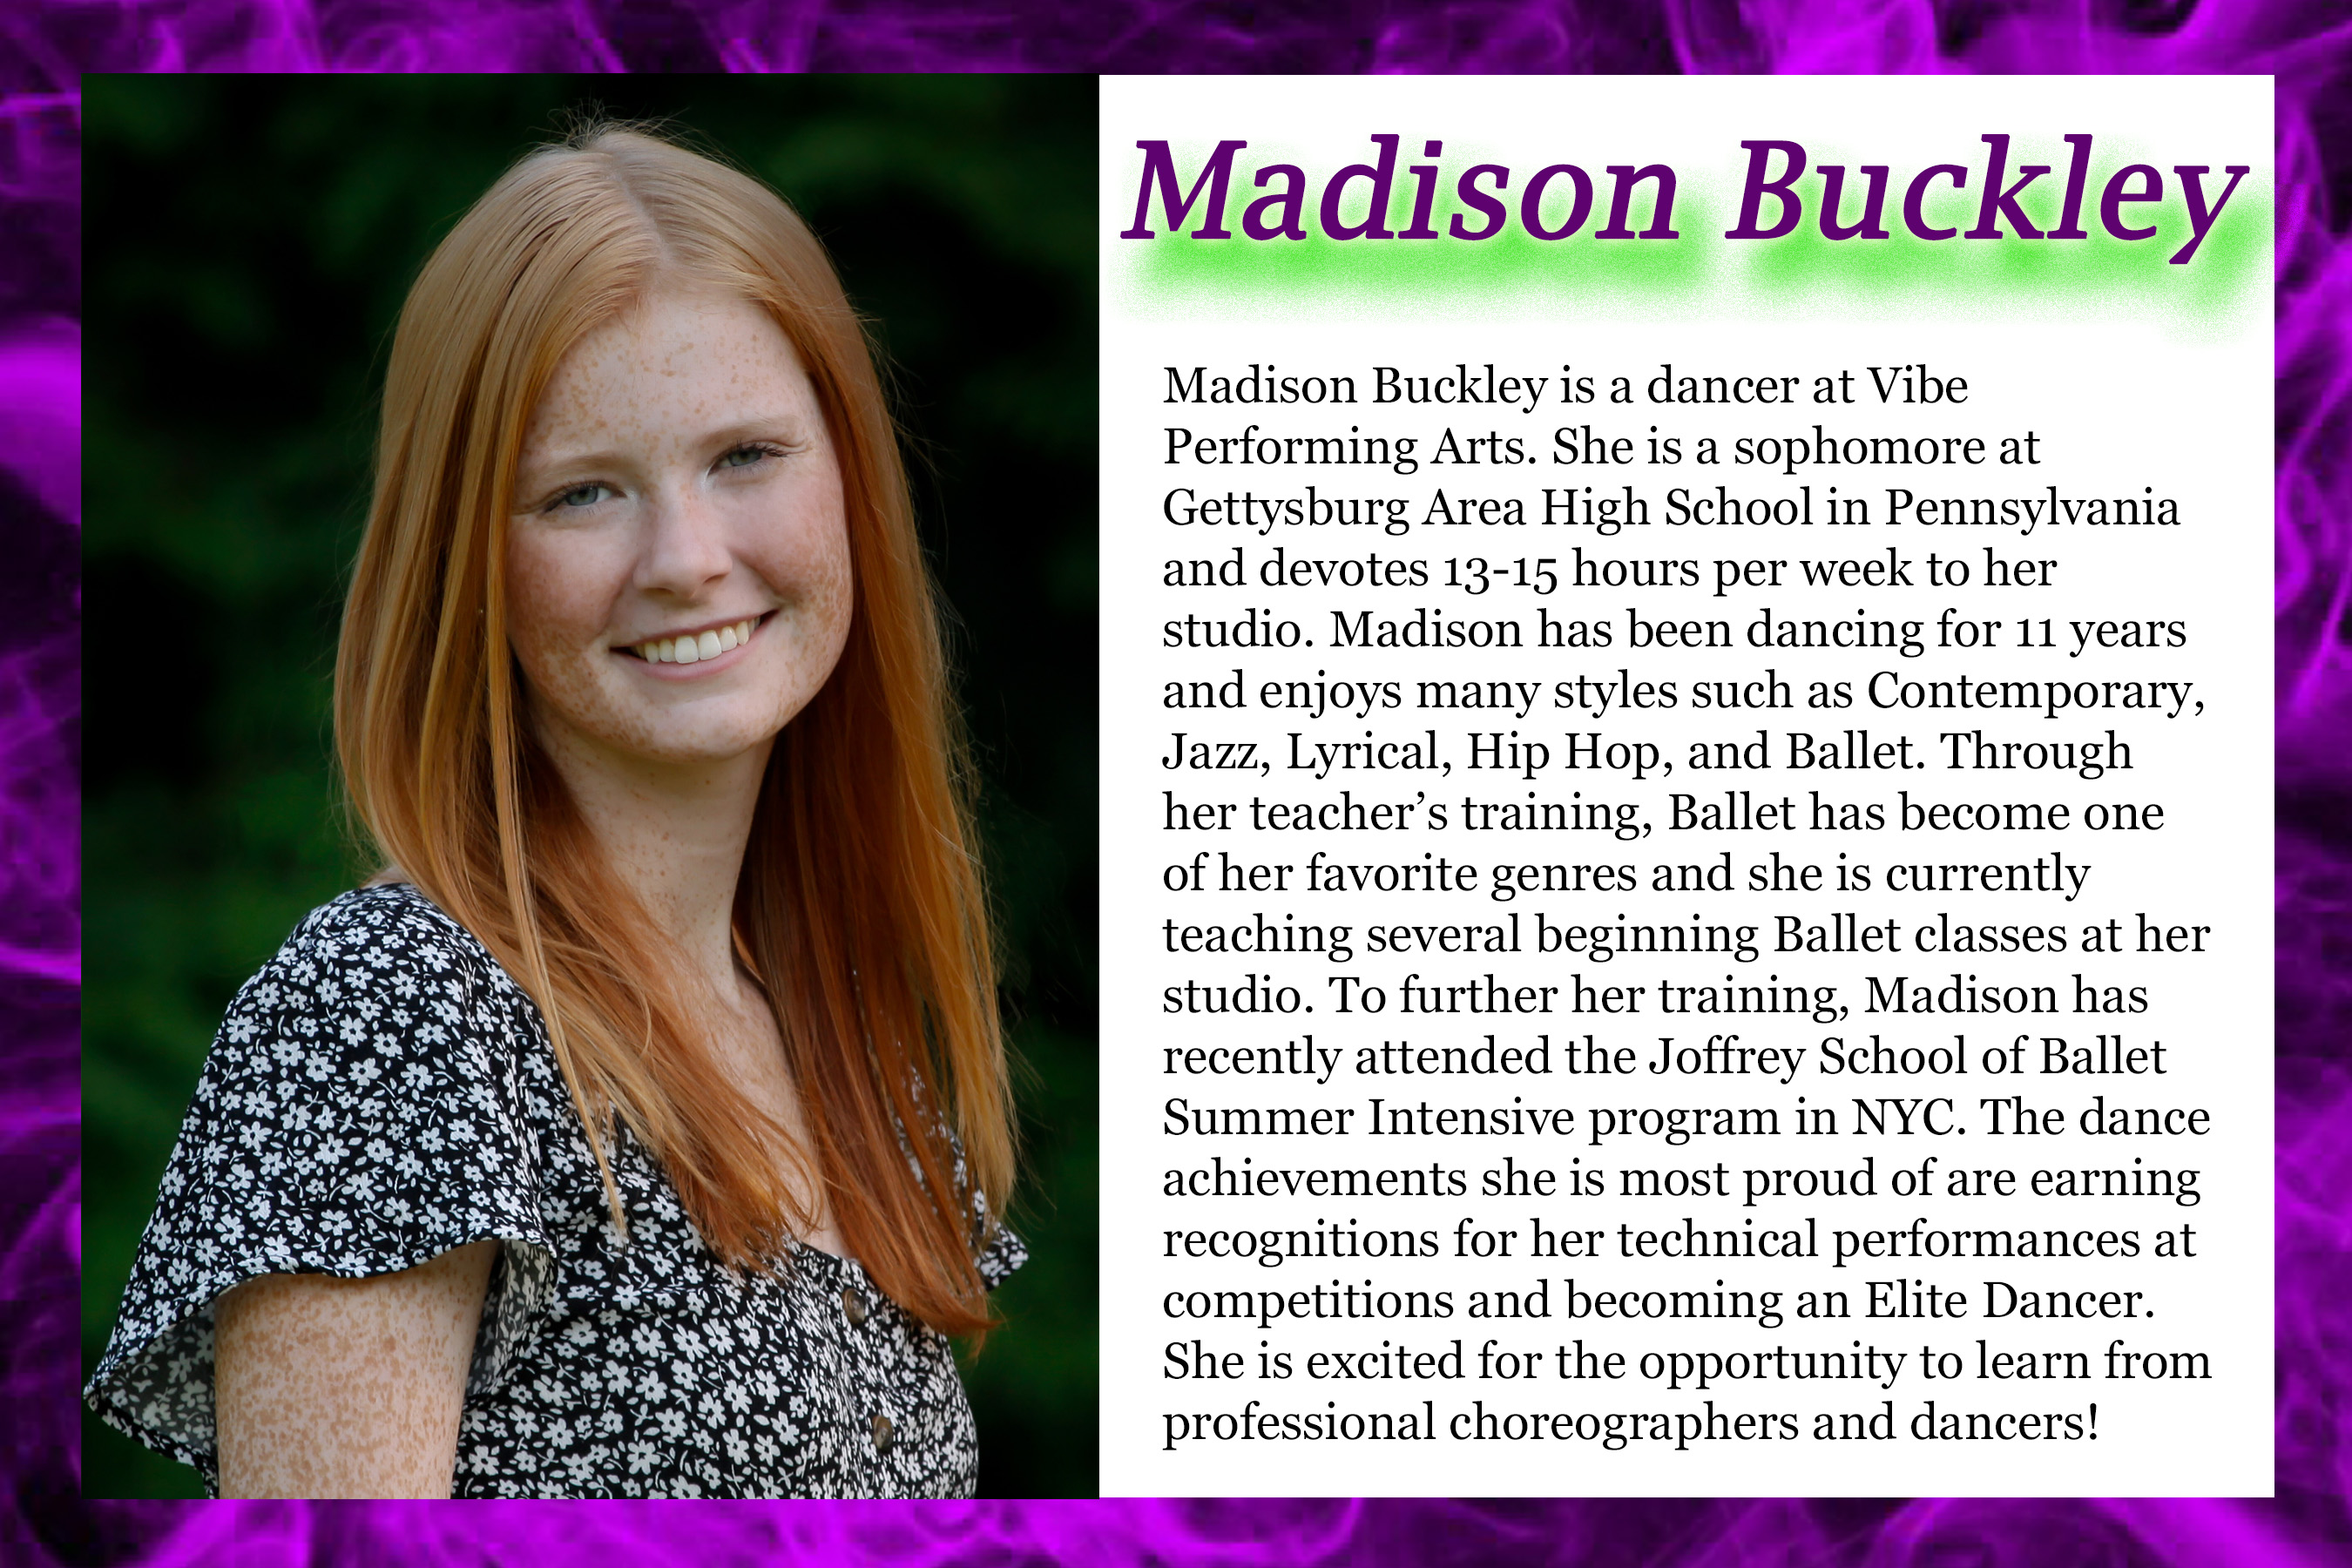 Madison Buckley